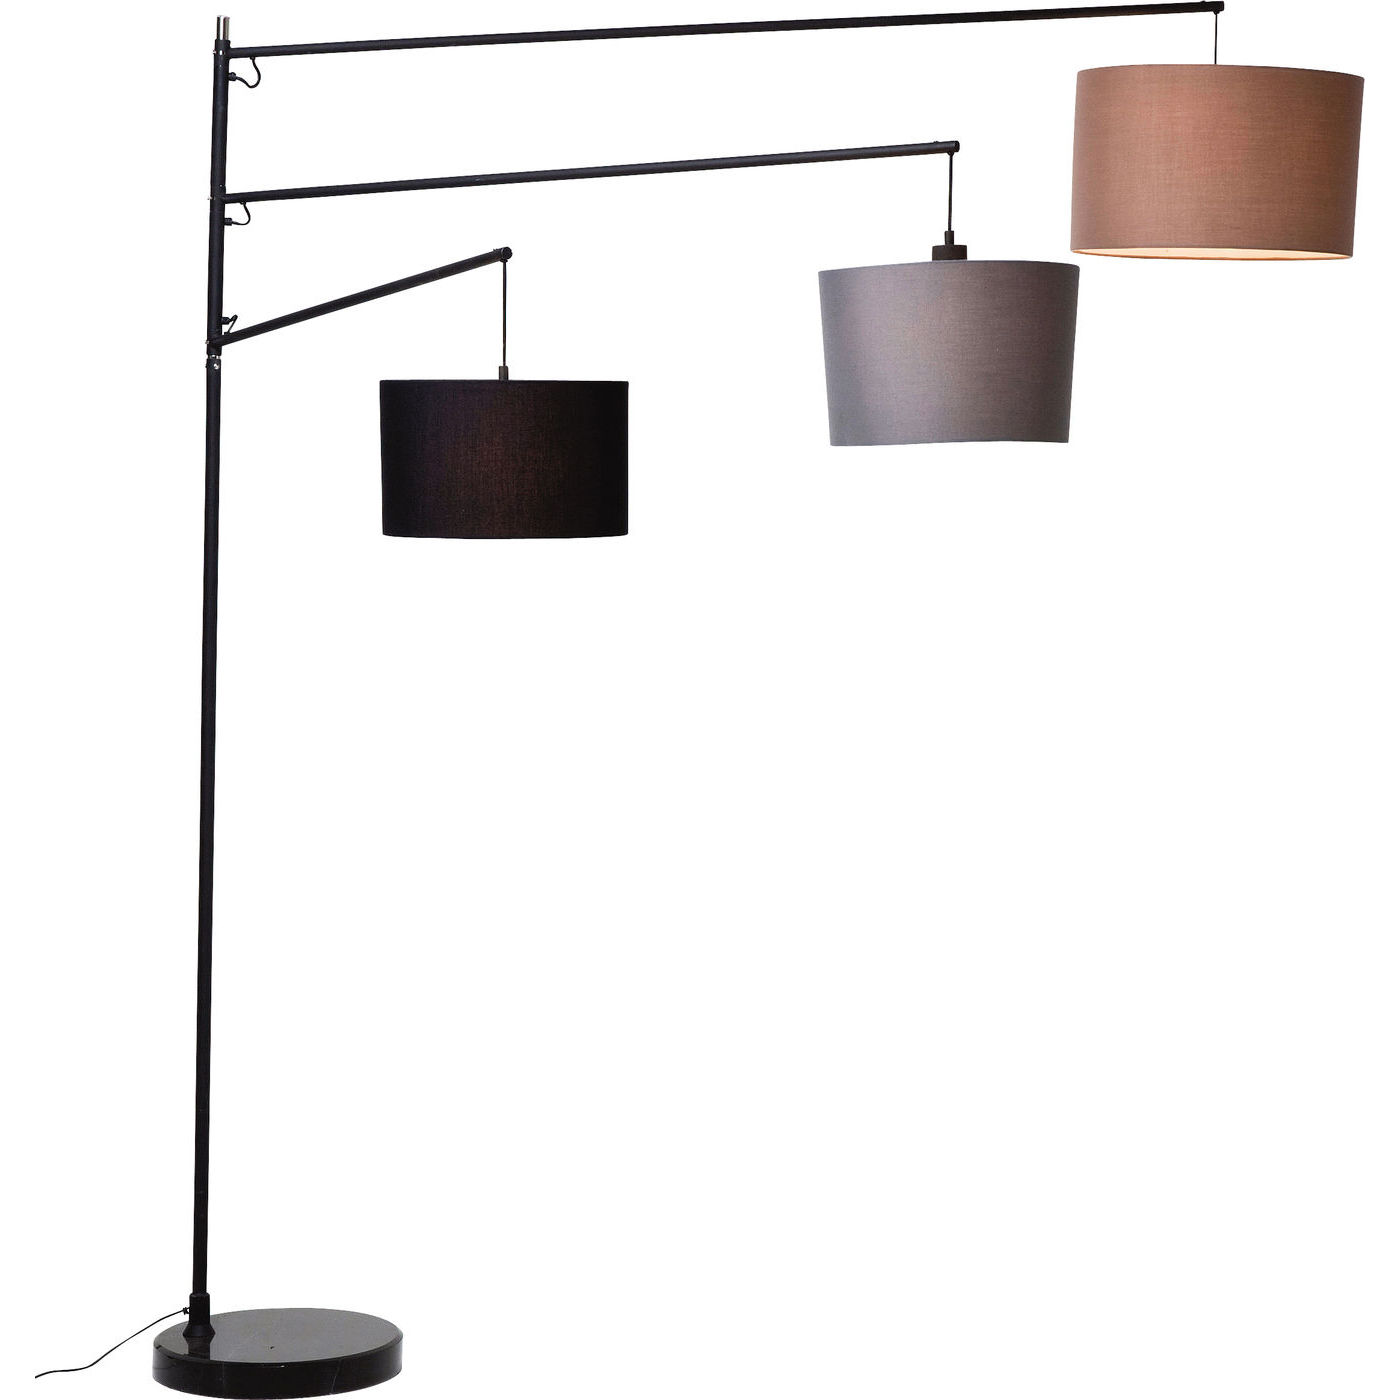 Image of   KARE DESIGN Gulvlampe, Lemming Tree